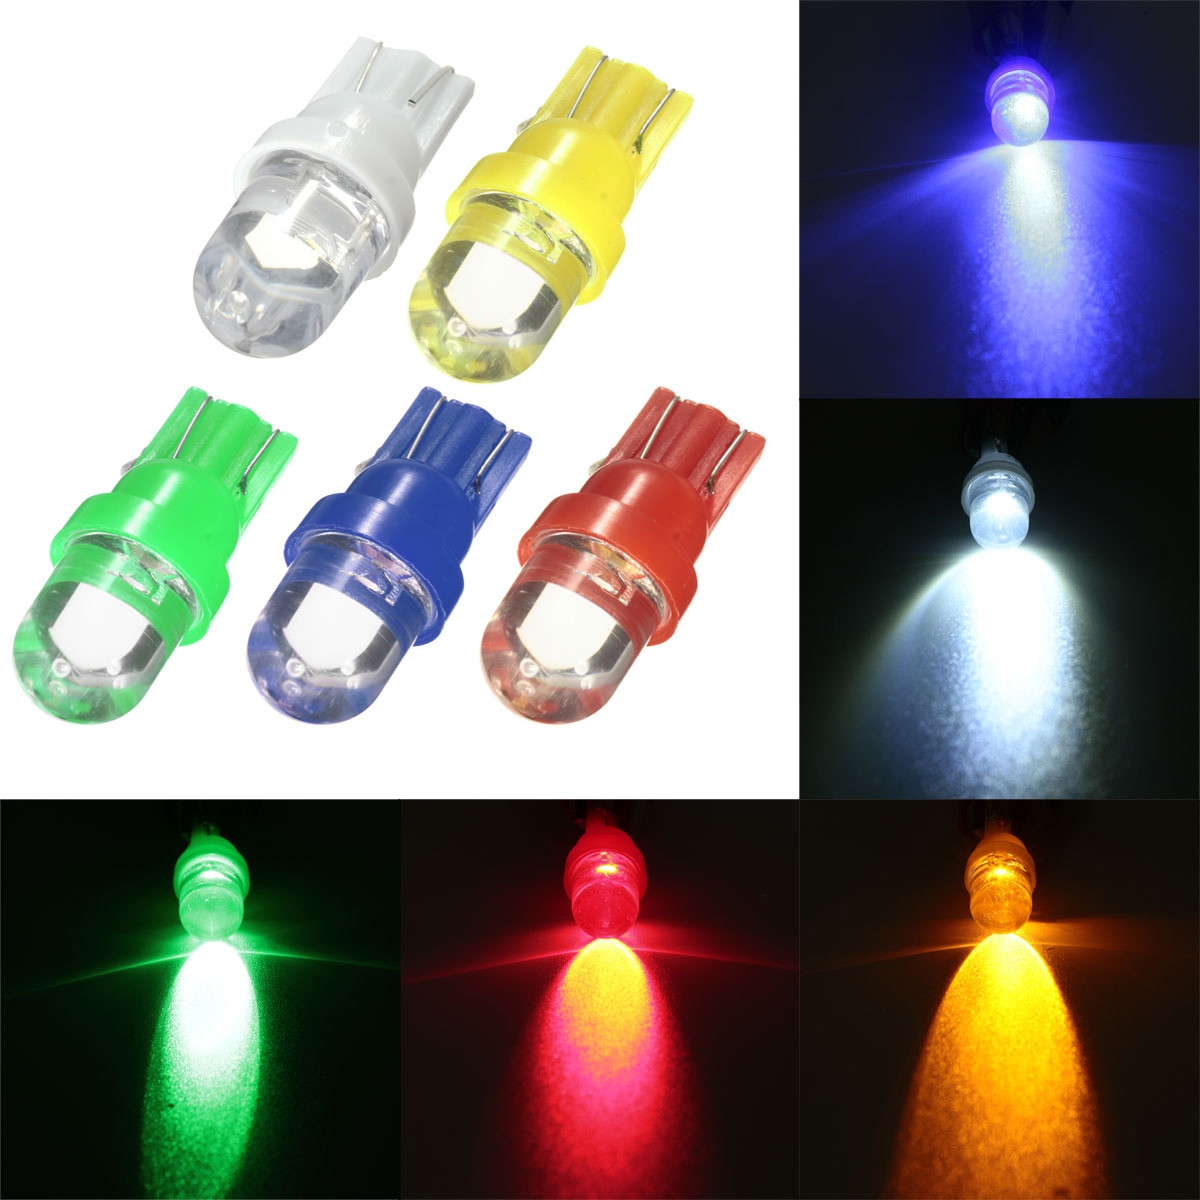 12V T10 W5W 501 LED Car Signal Turning Side Lights Indicator Bul